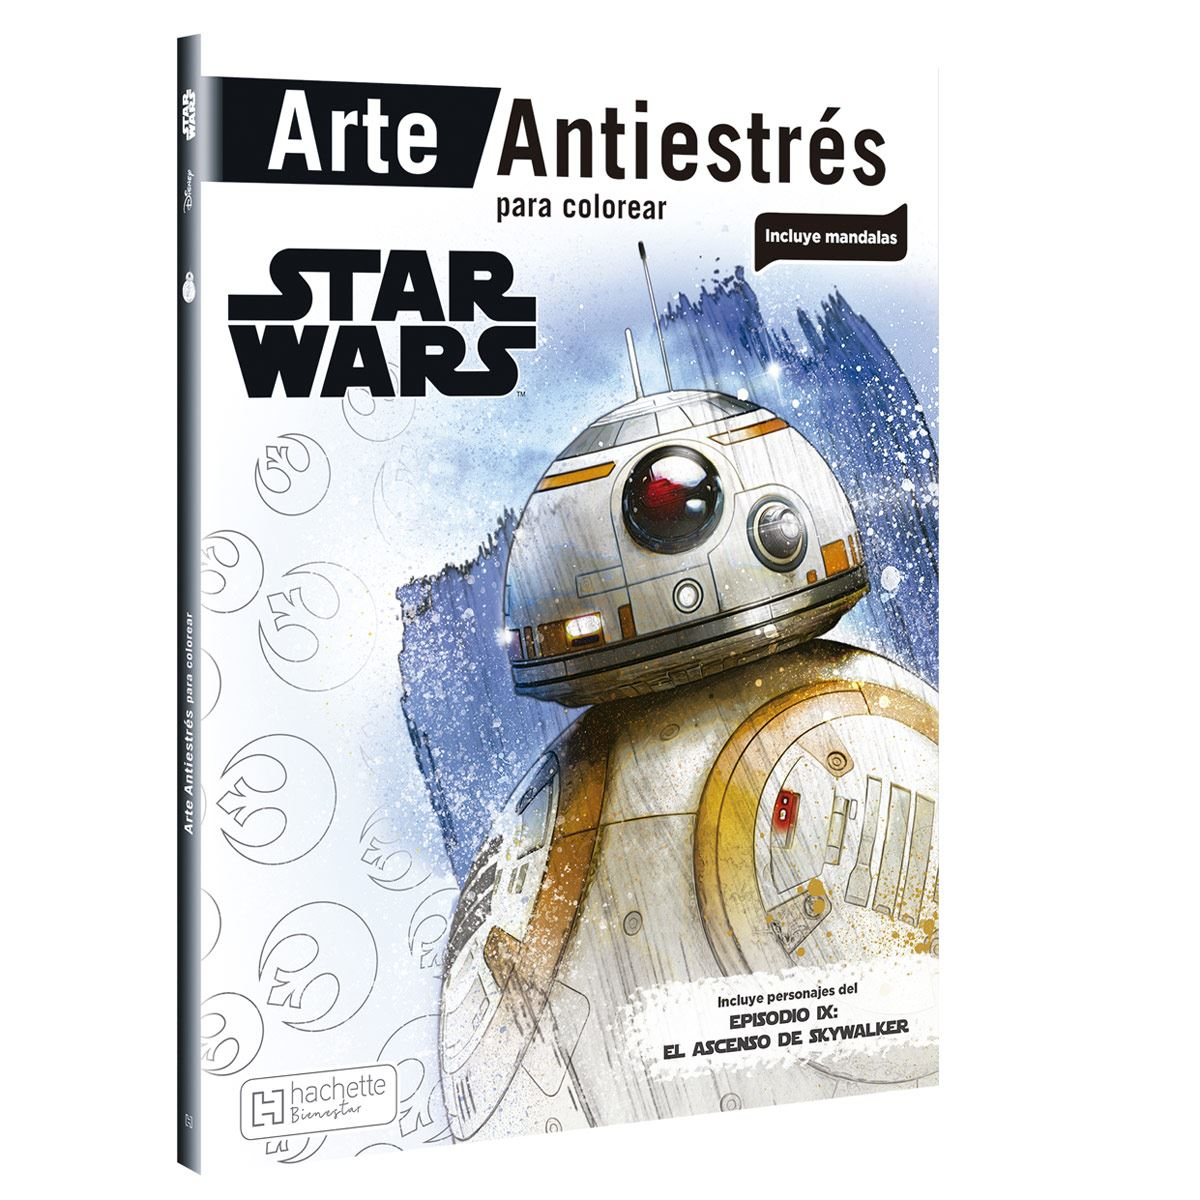 Star Wars. Arte antiestrés